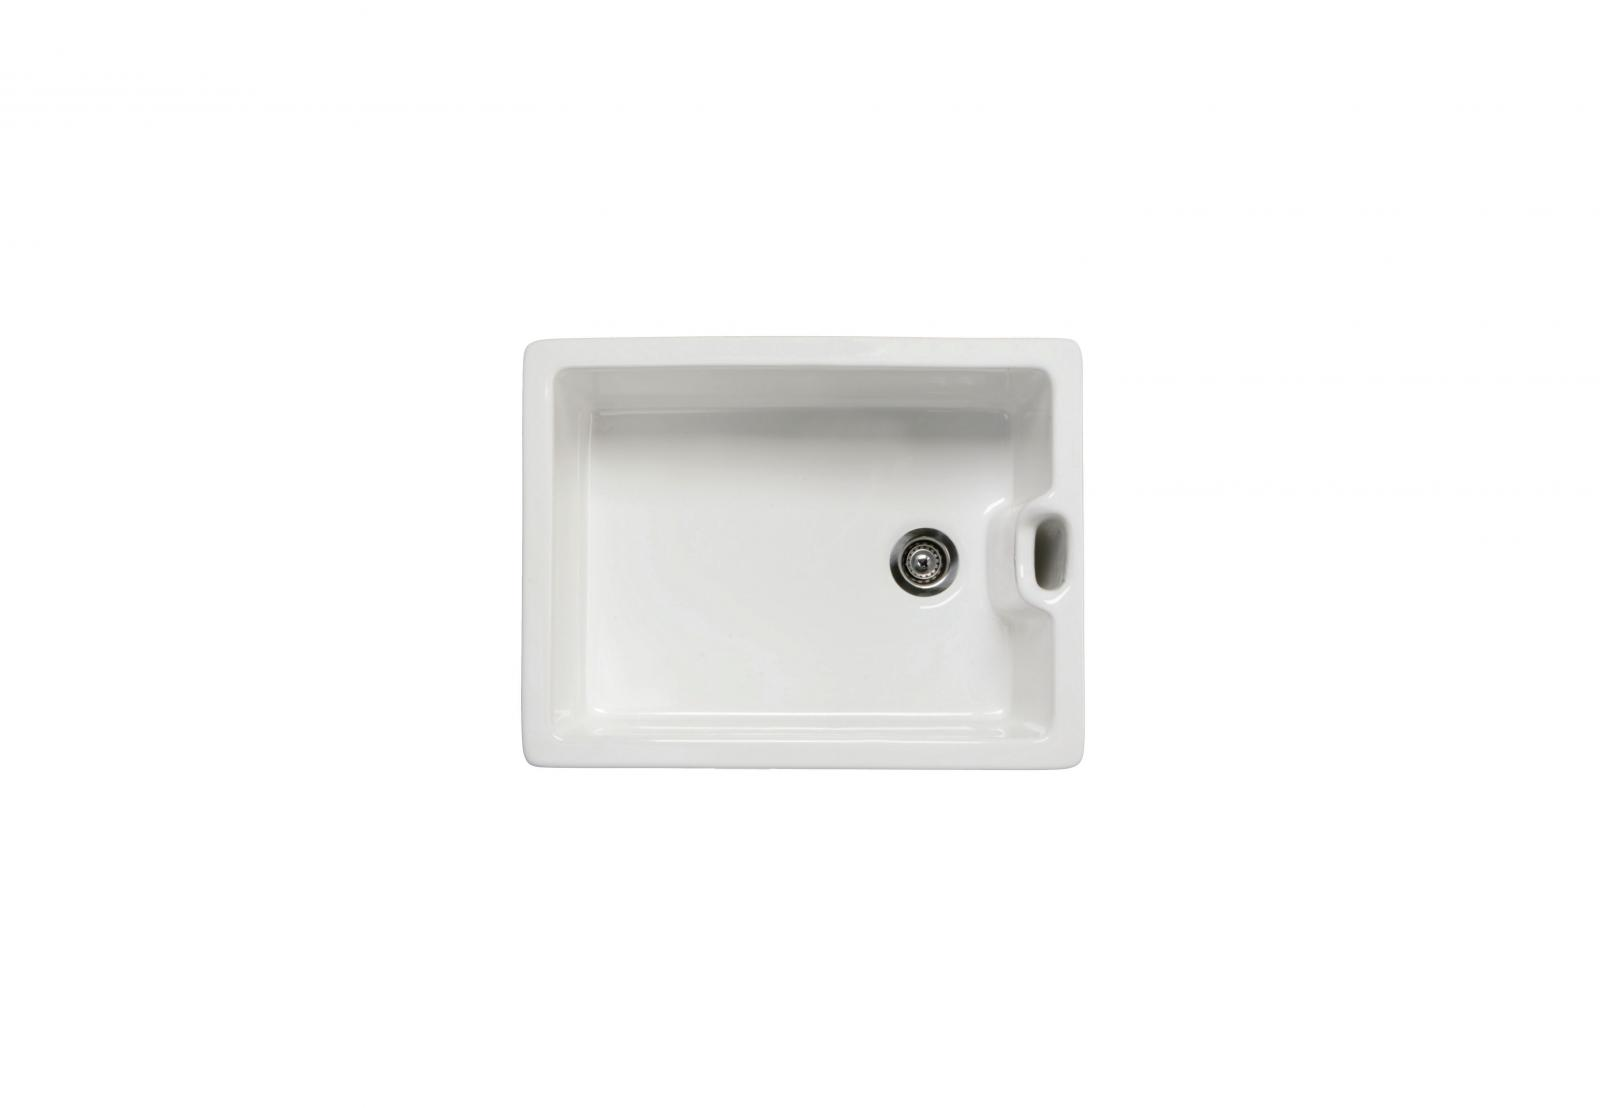 High-quality sink Clovis - single bowl, ceramic